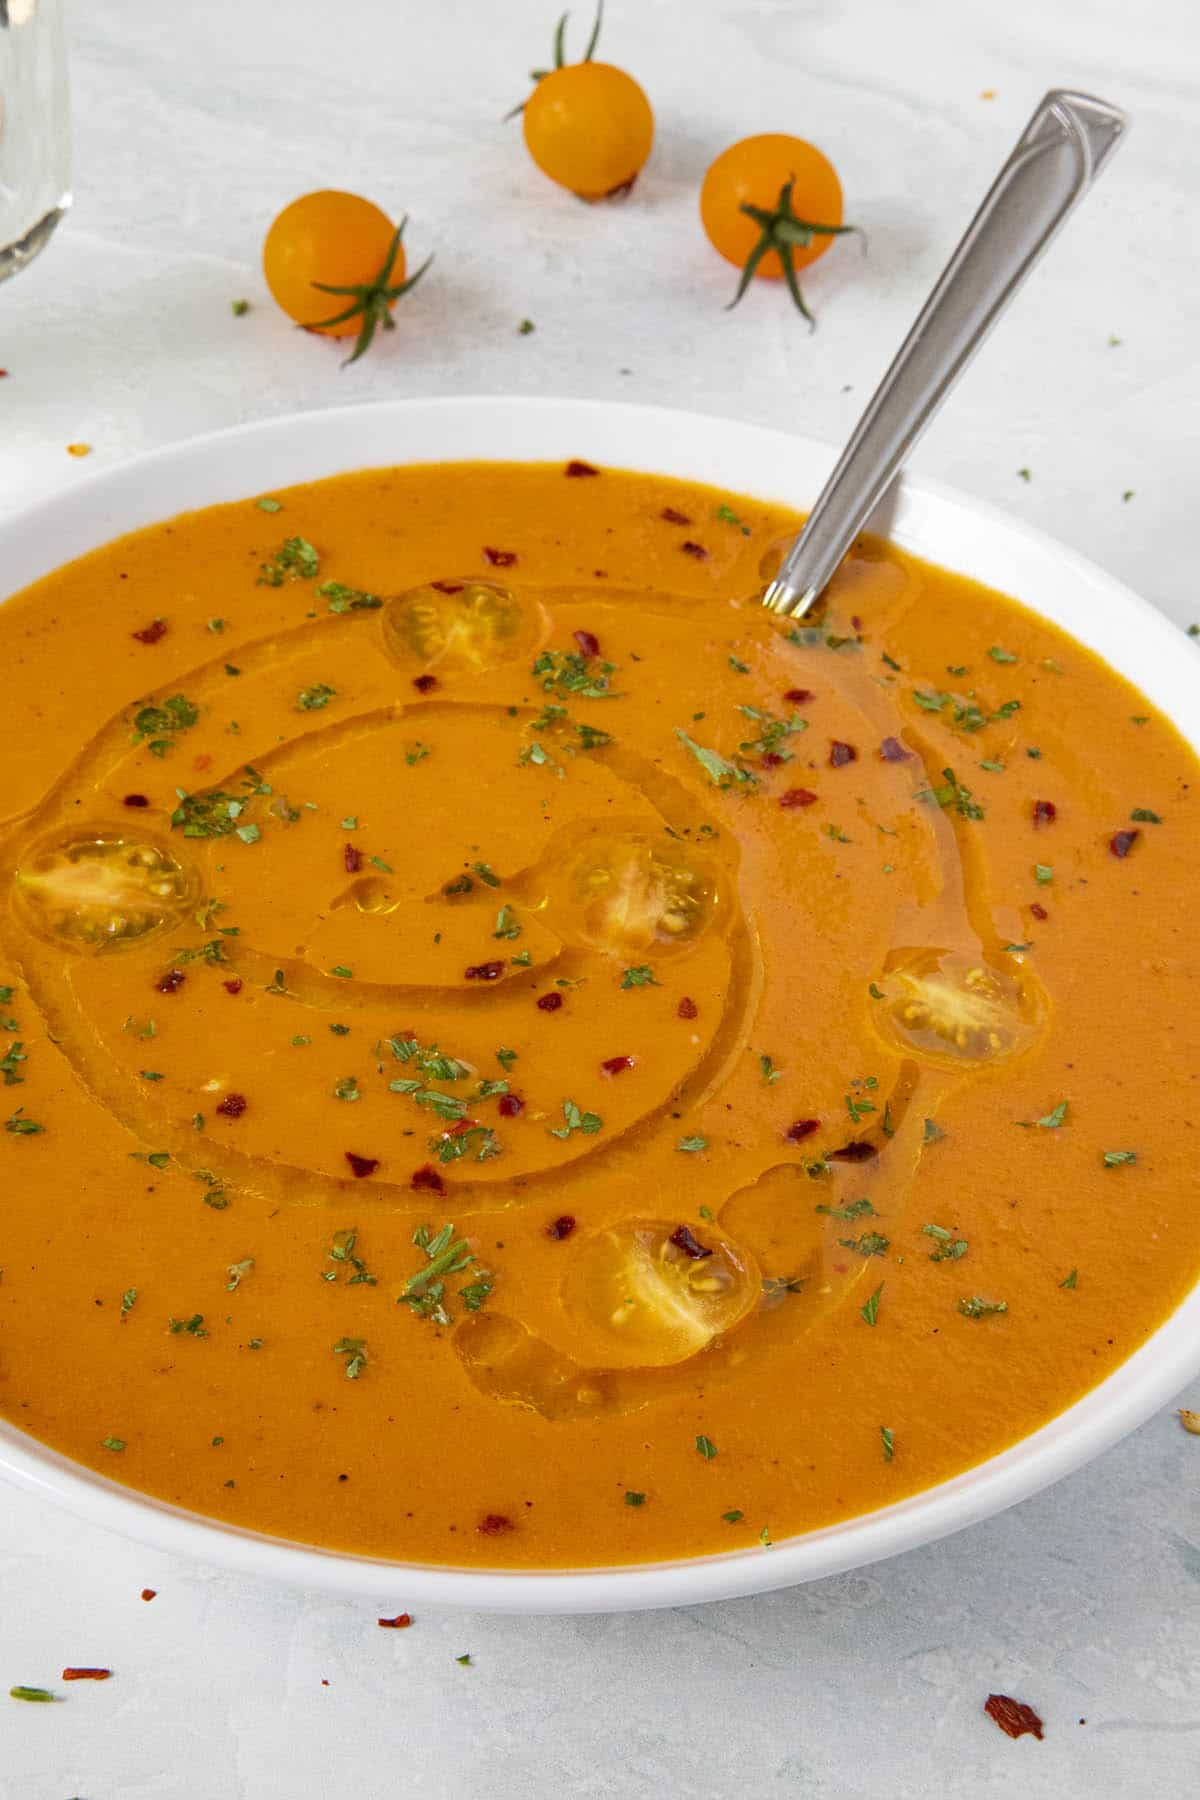 A bowl of Roasted Tomato Soup with spicy chili flakes, sliced cherry tomatoes and a swirl of olive oil on top